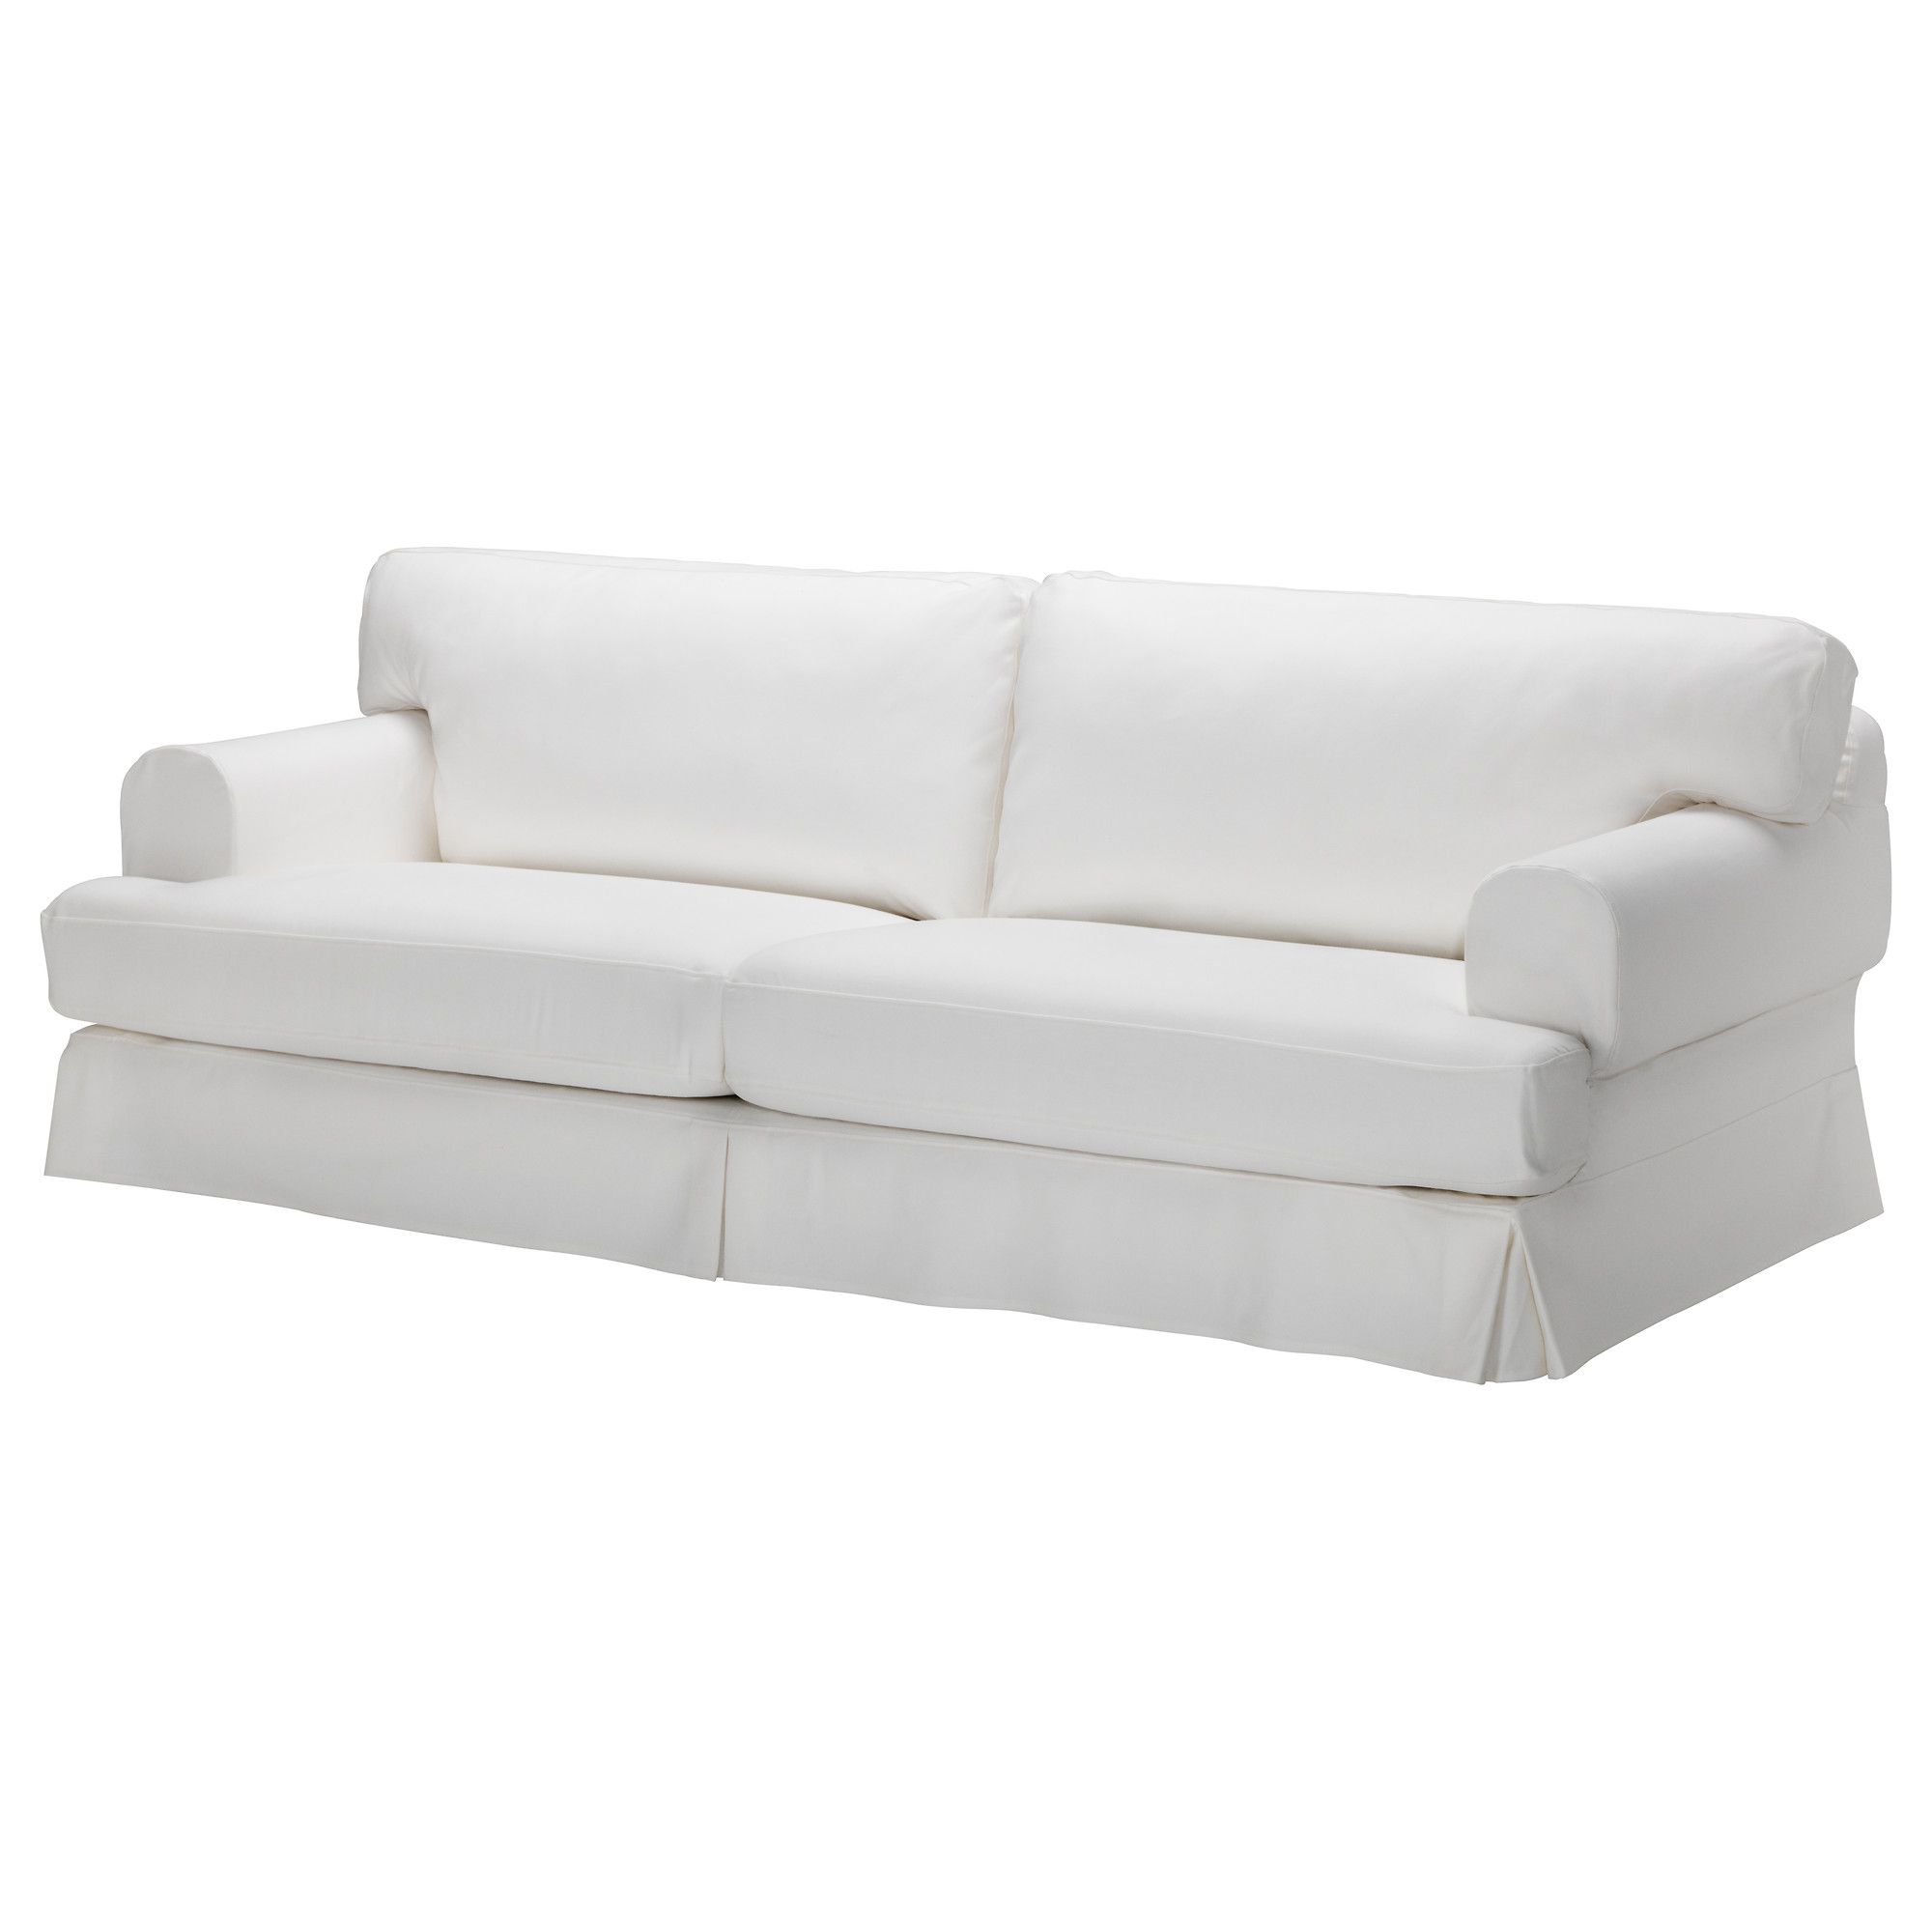 Ikea Sofa T HovÅs Sofa Gobo White Ikea This Probably Won 39t Be